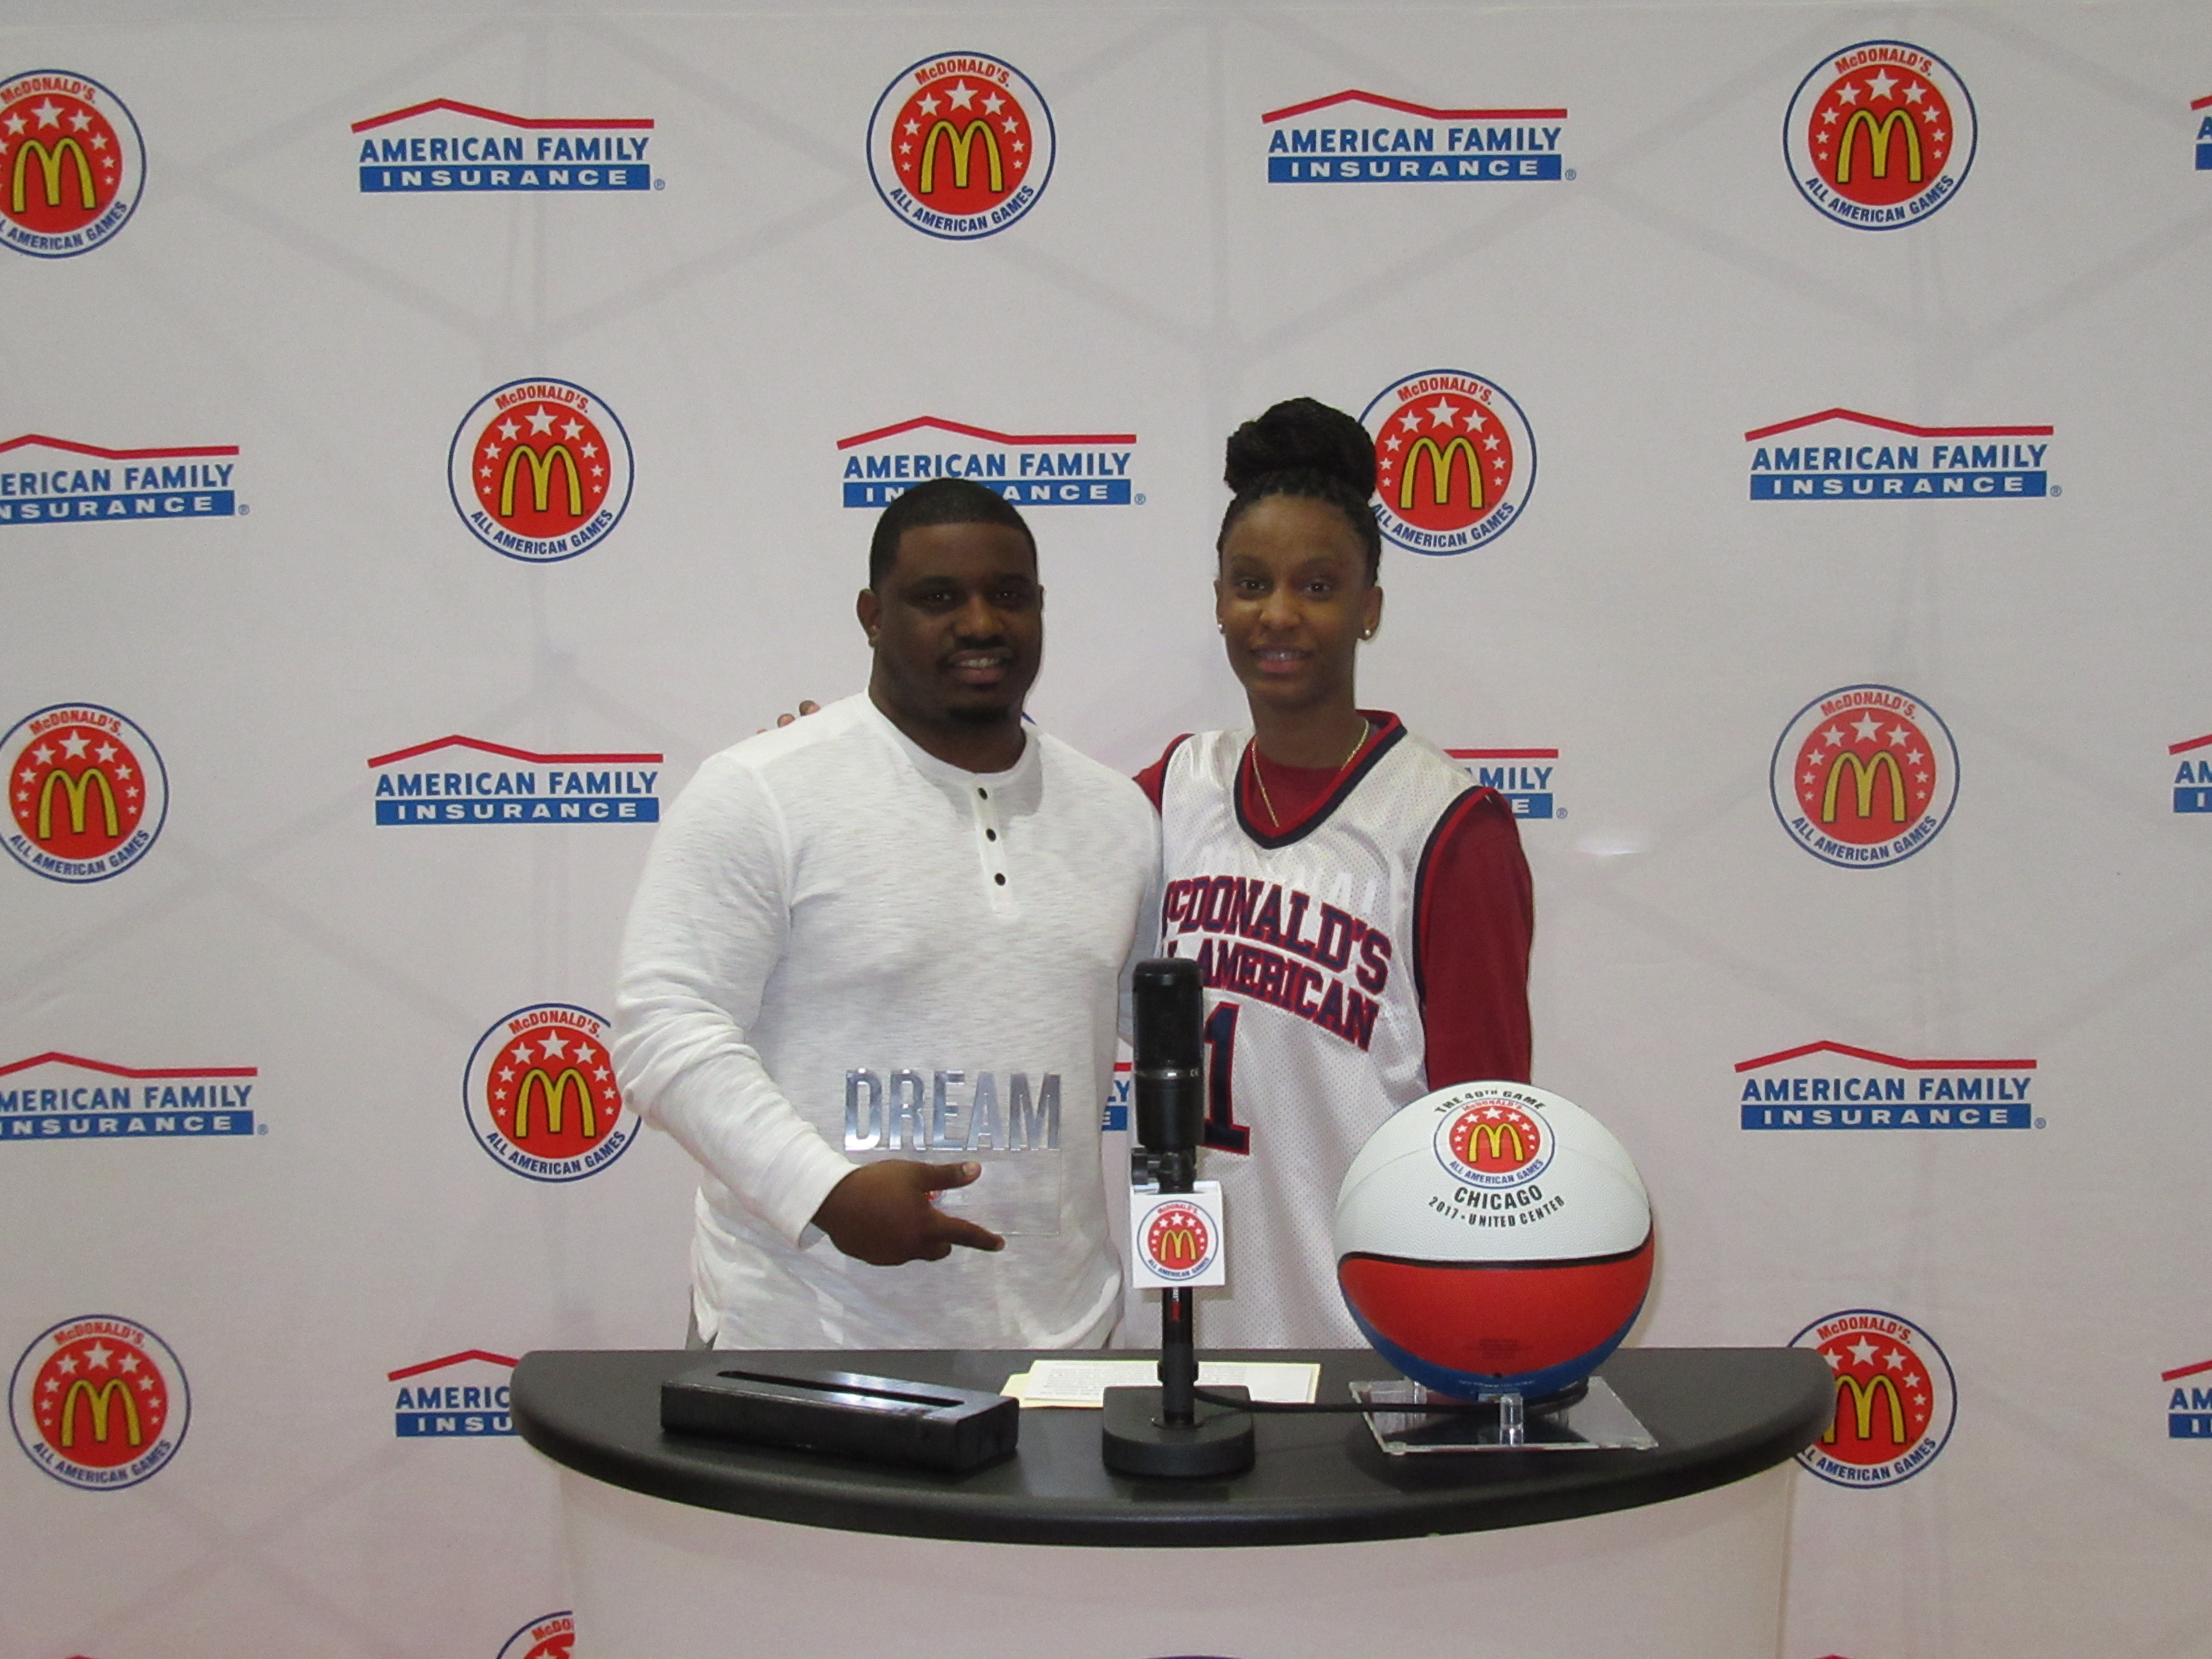 Kiana Williams presented Chancy Campbell with the Dream Champion Award. (Photo: McDAAG)